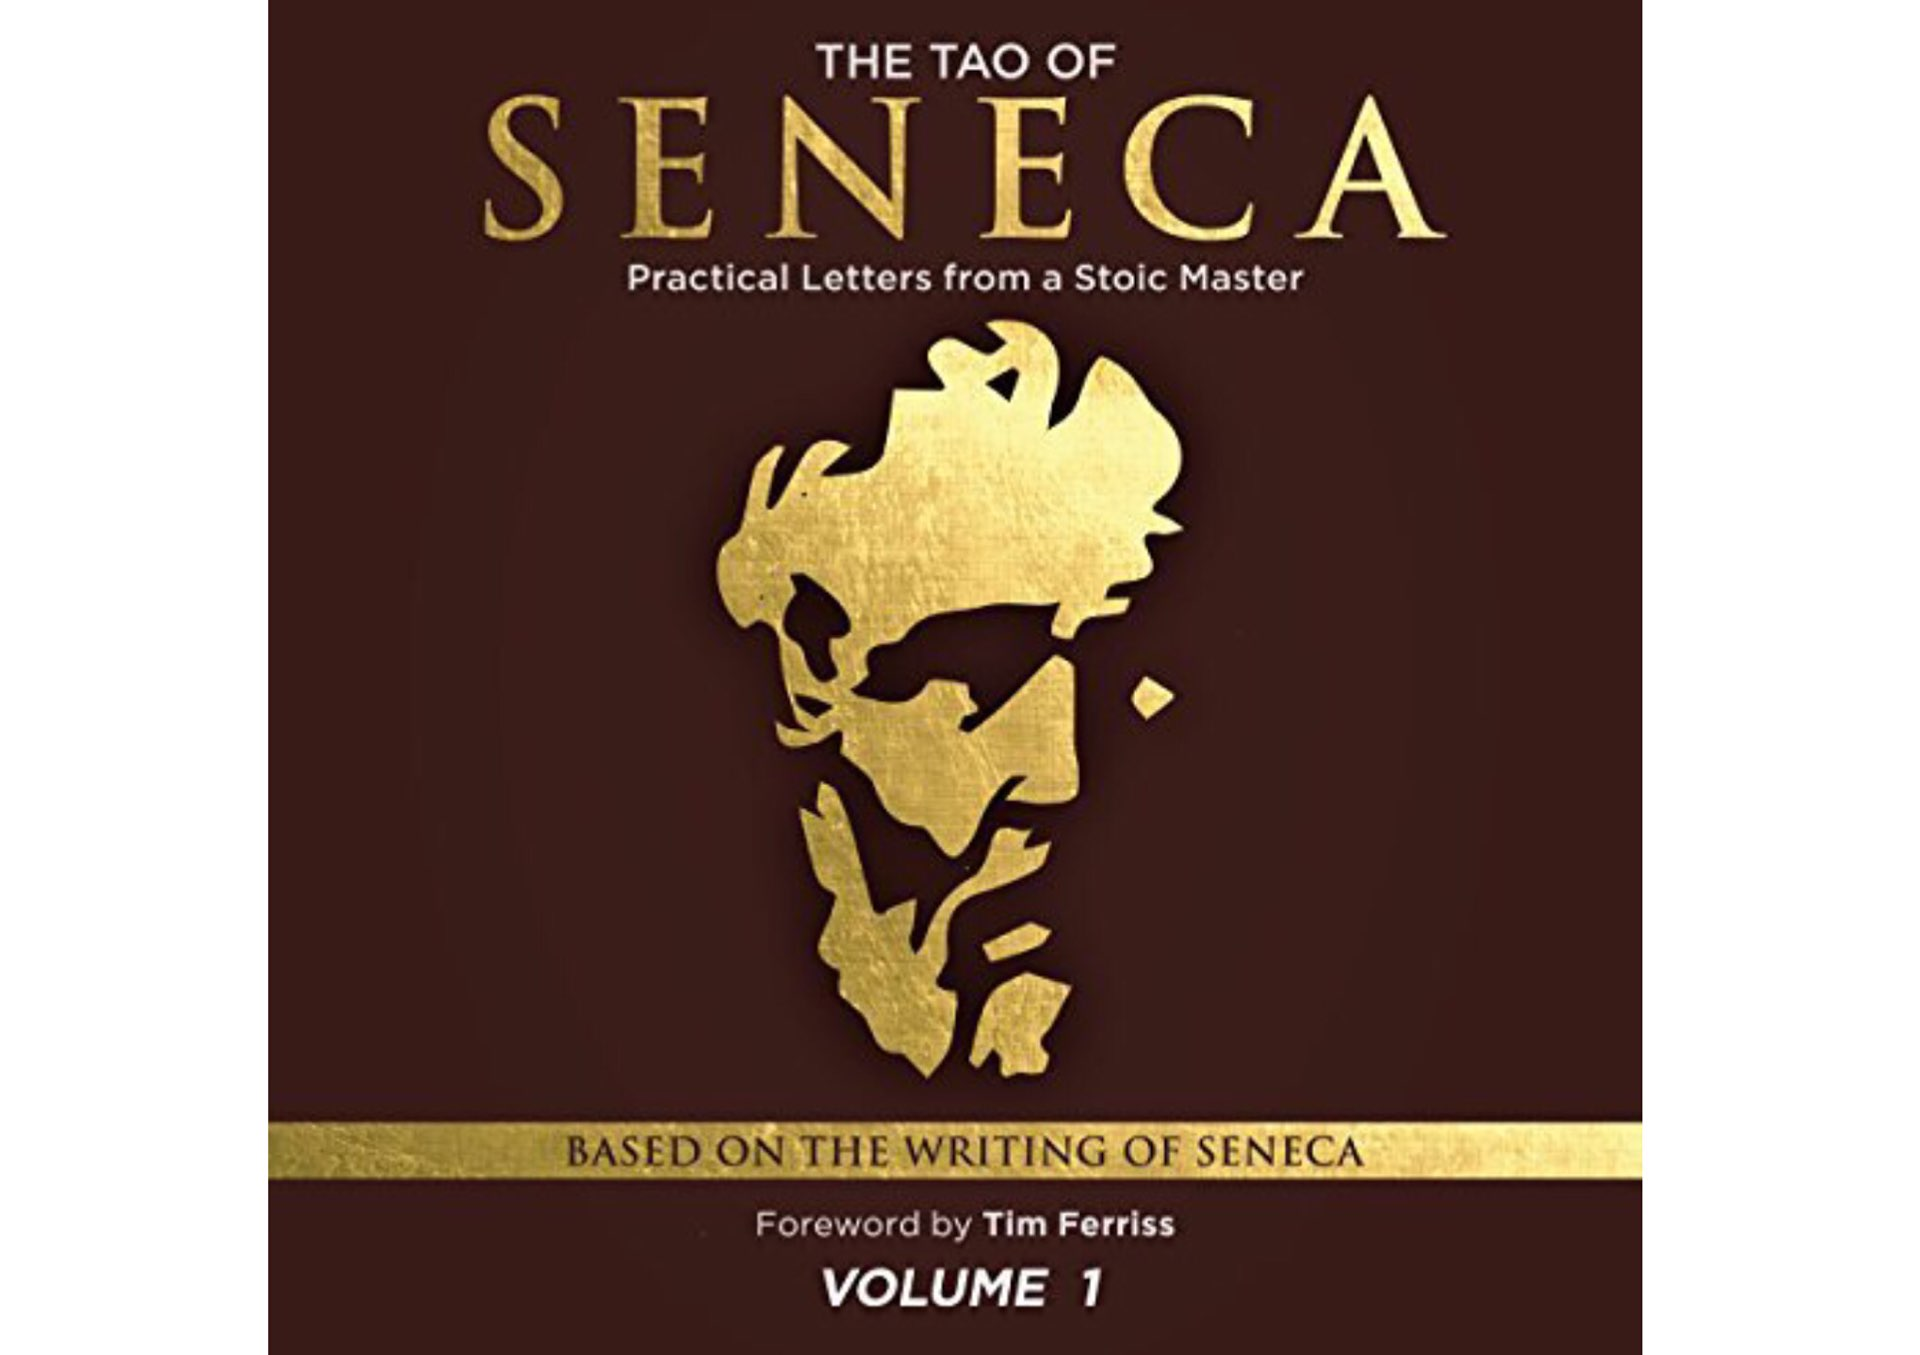 the-tao-of-seneca-by-tim-ferriss